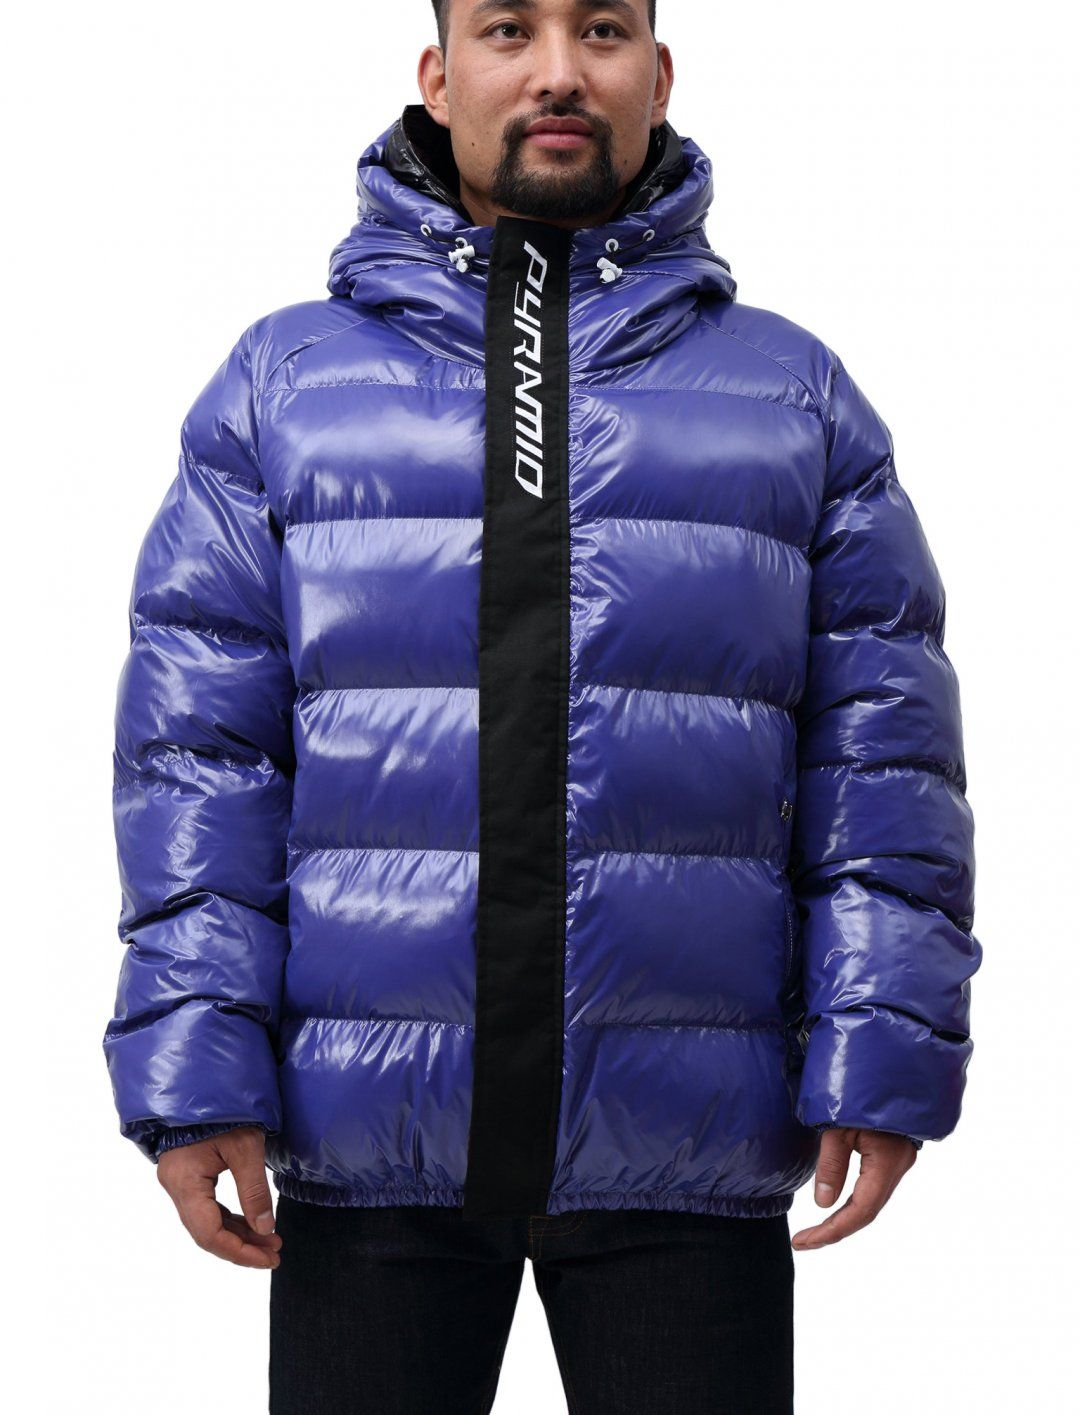 7012dc01 Chris Brown - Undecided Chris Brown's Puffer Jacket - Black Pyramid Clothing